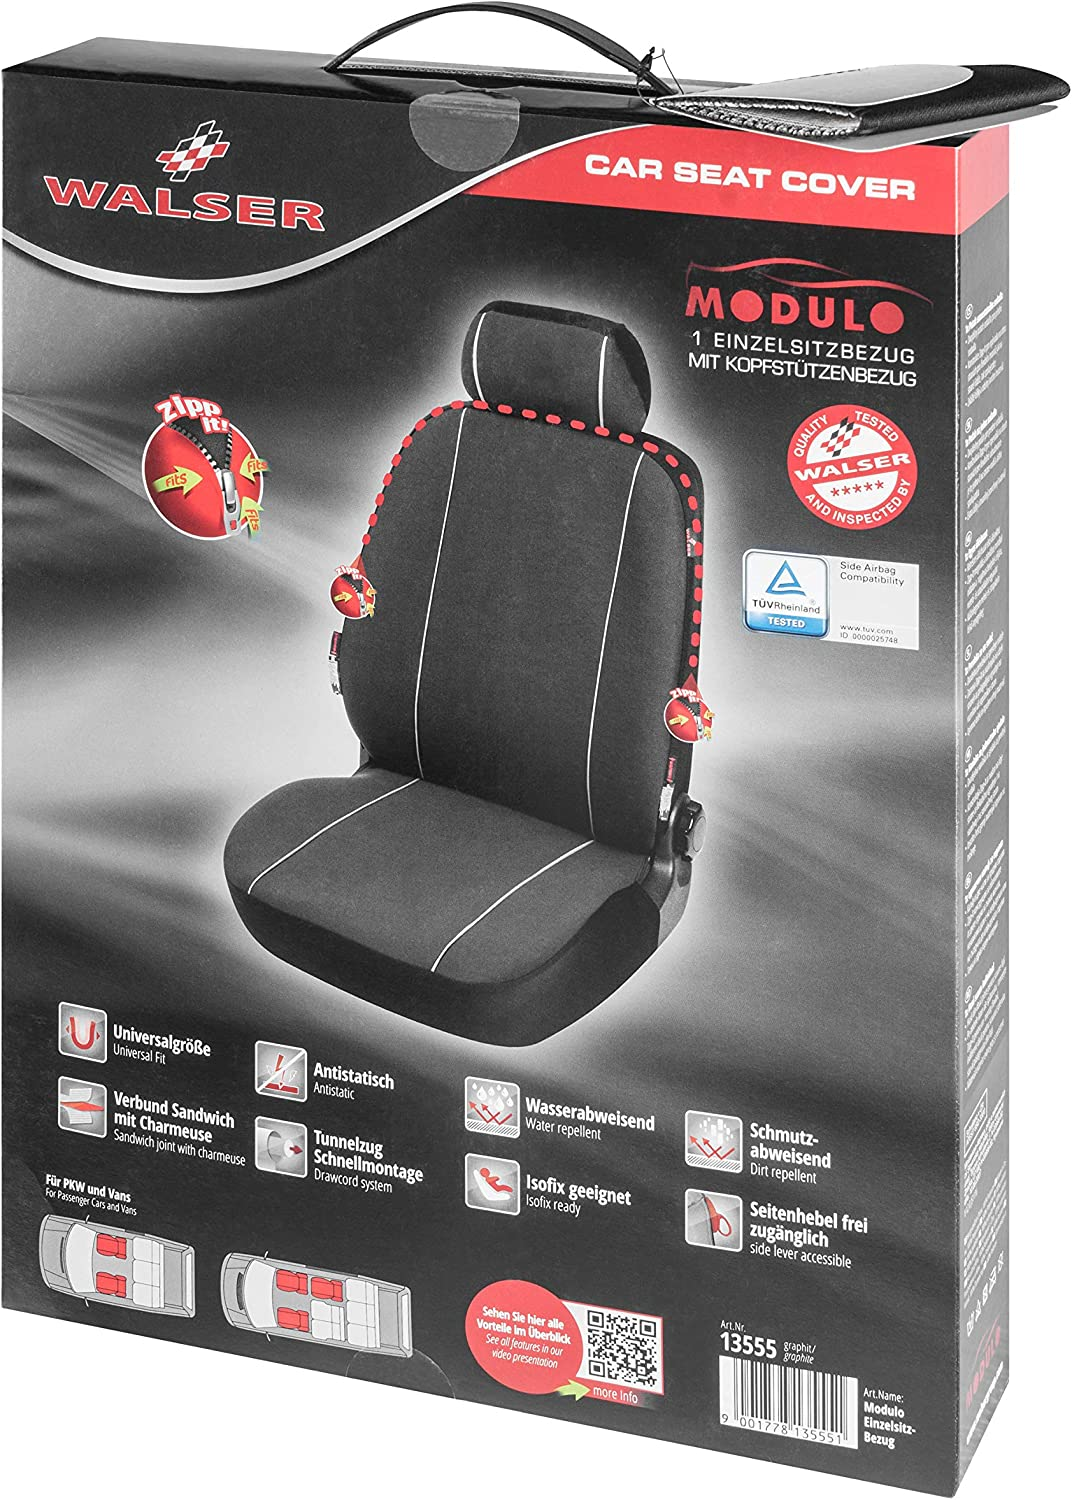 Walser Modulo Car Seat Cover Single Front Seat Cover Black Universal Matching Seat Cover 13555